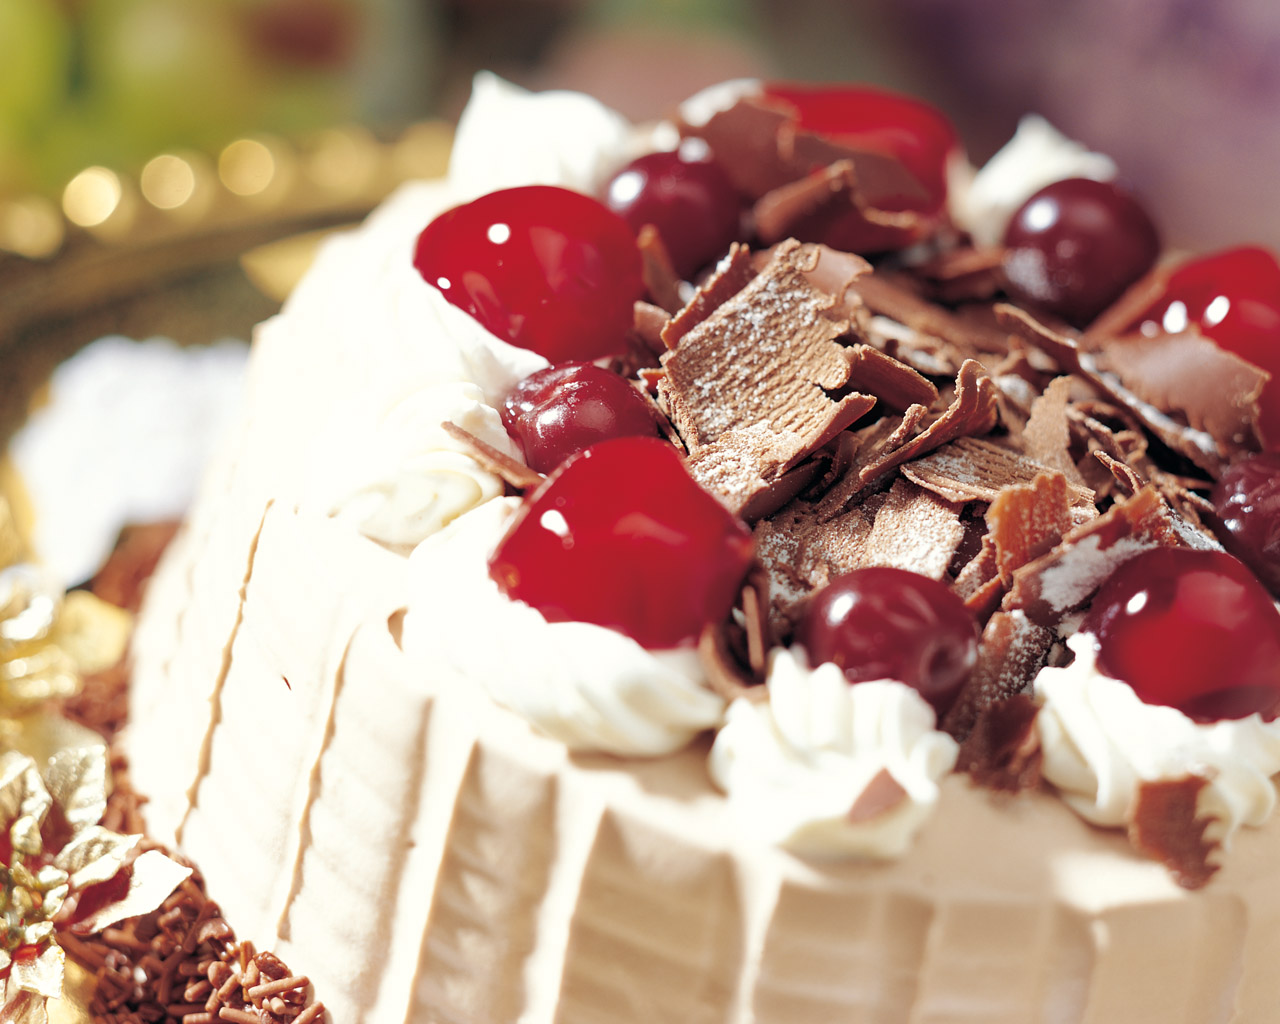 Awesome Cake Free Wallpaper Id244532 For Hd 1280x1024 Pc